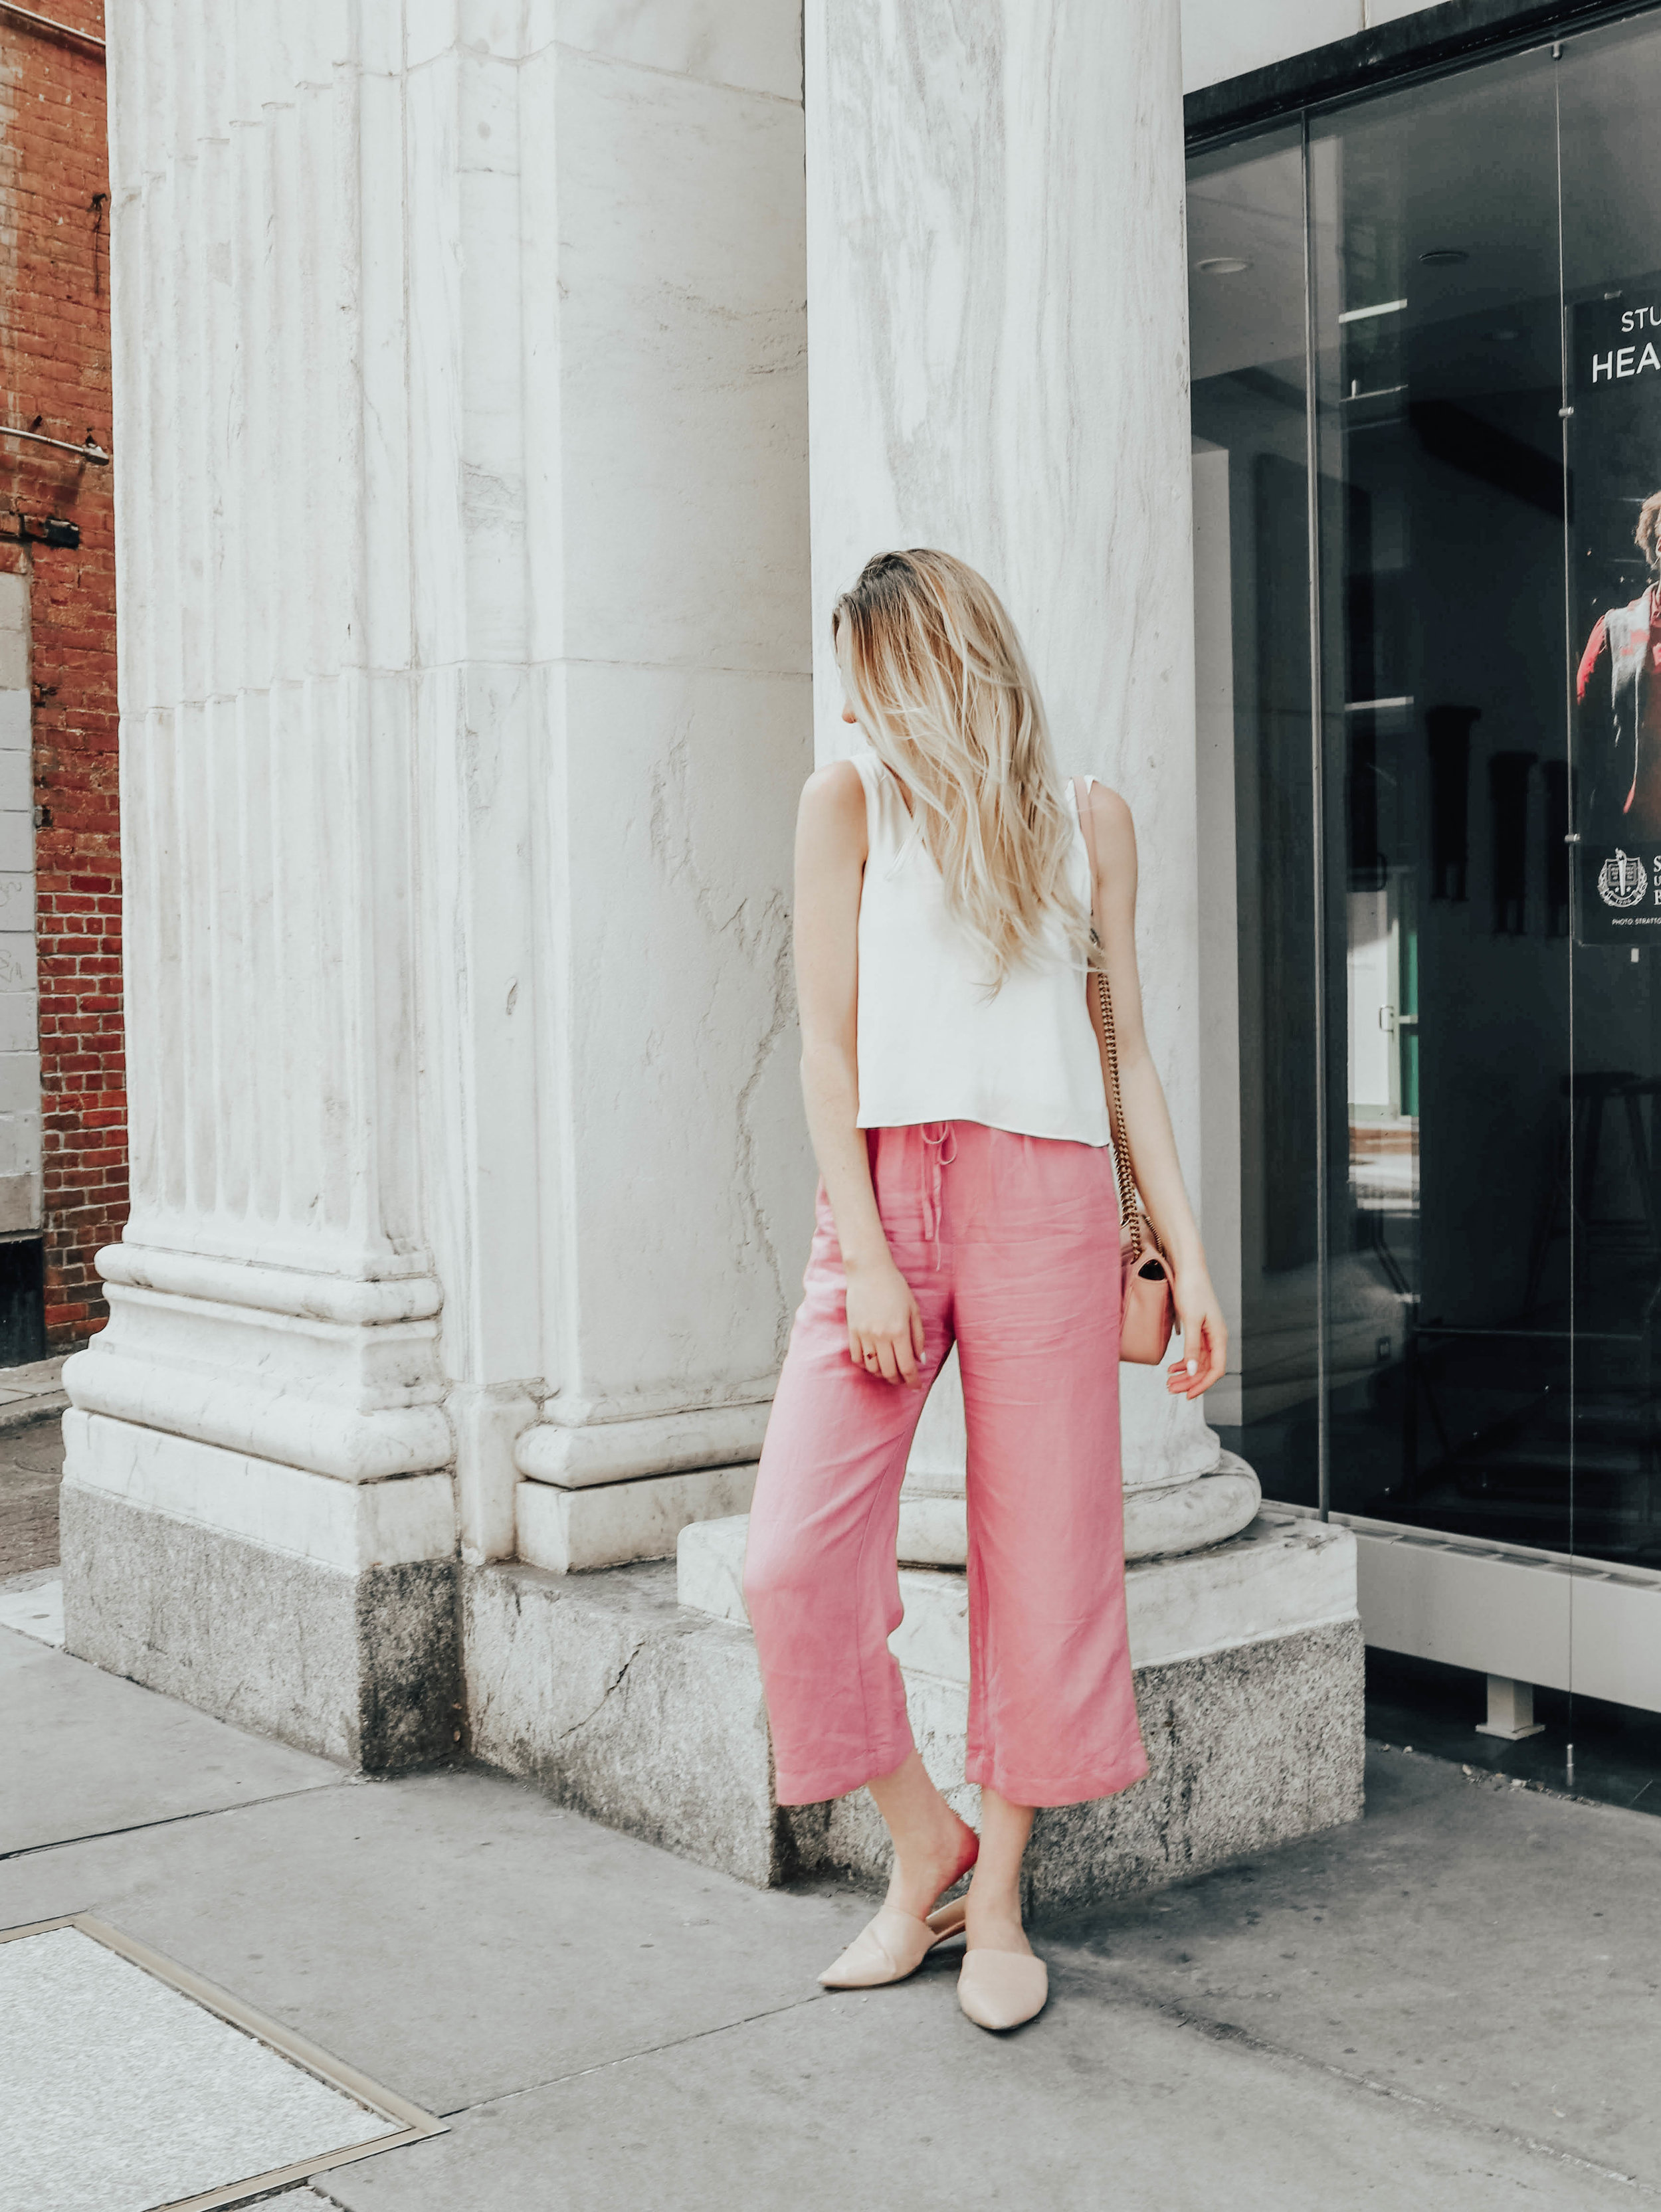 Summer Pants Outfit | @maevestier